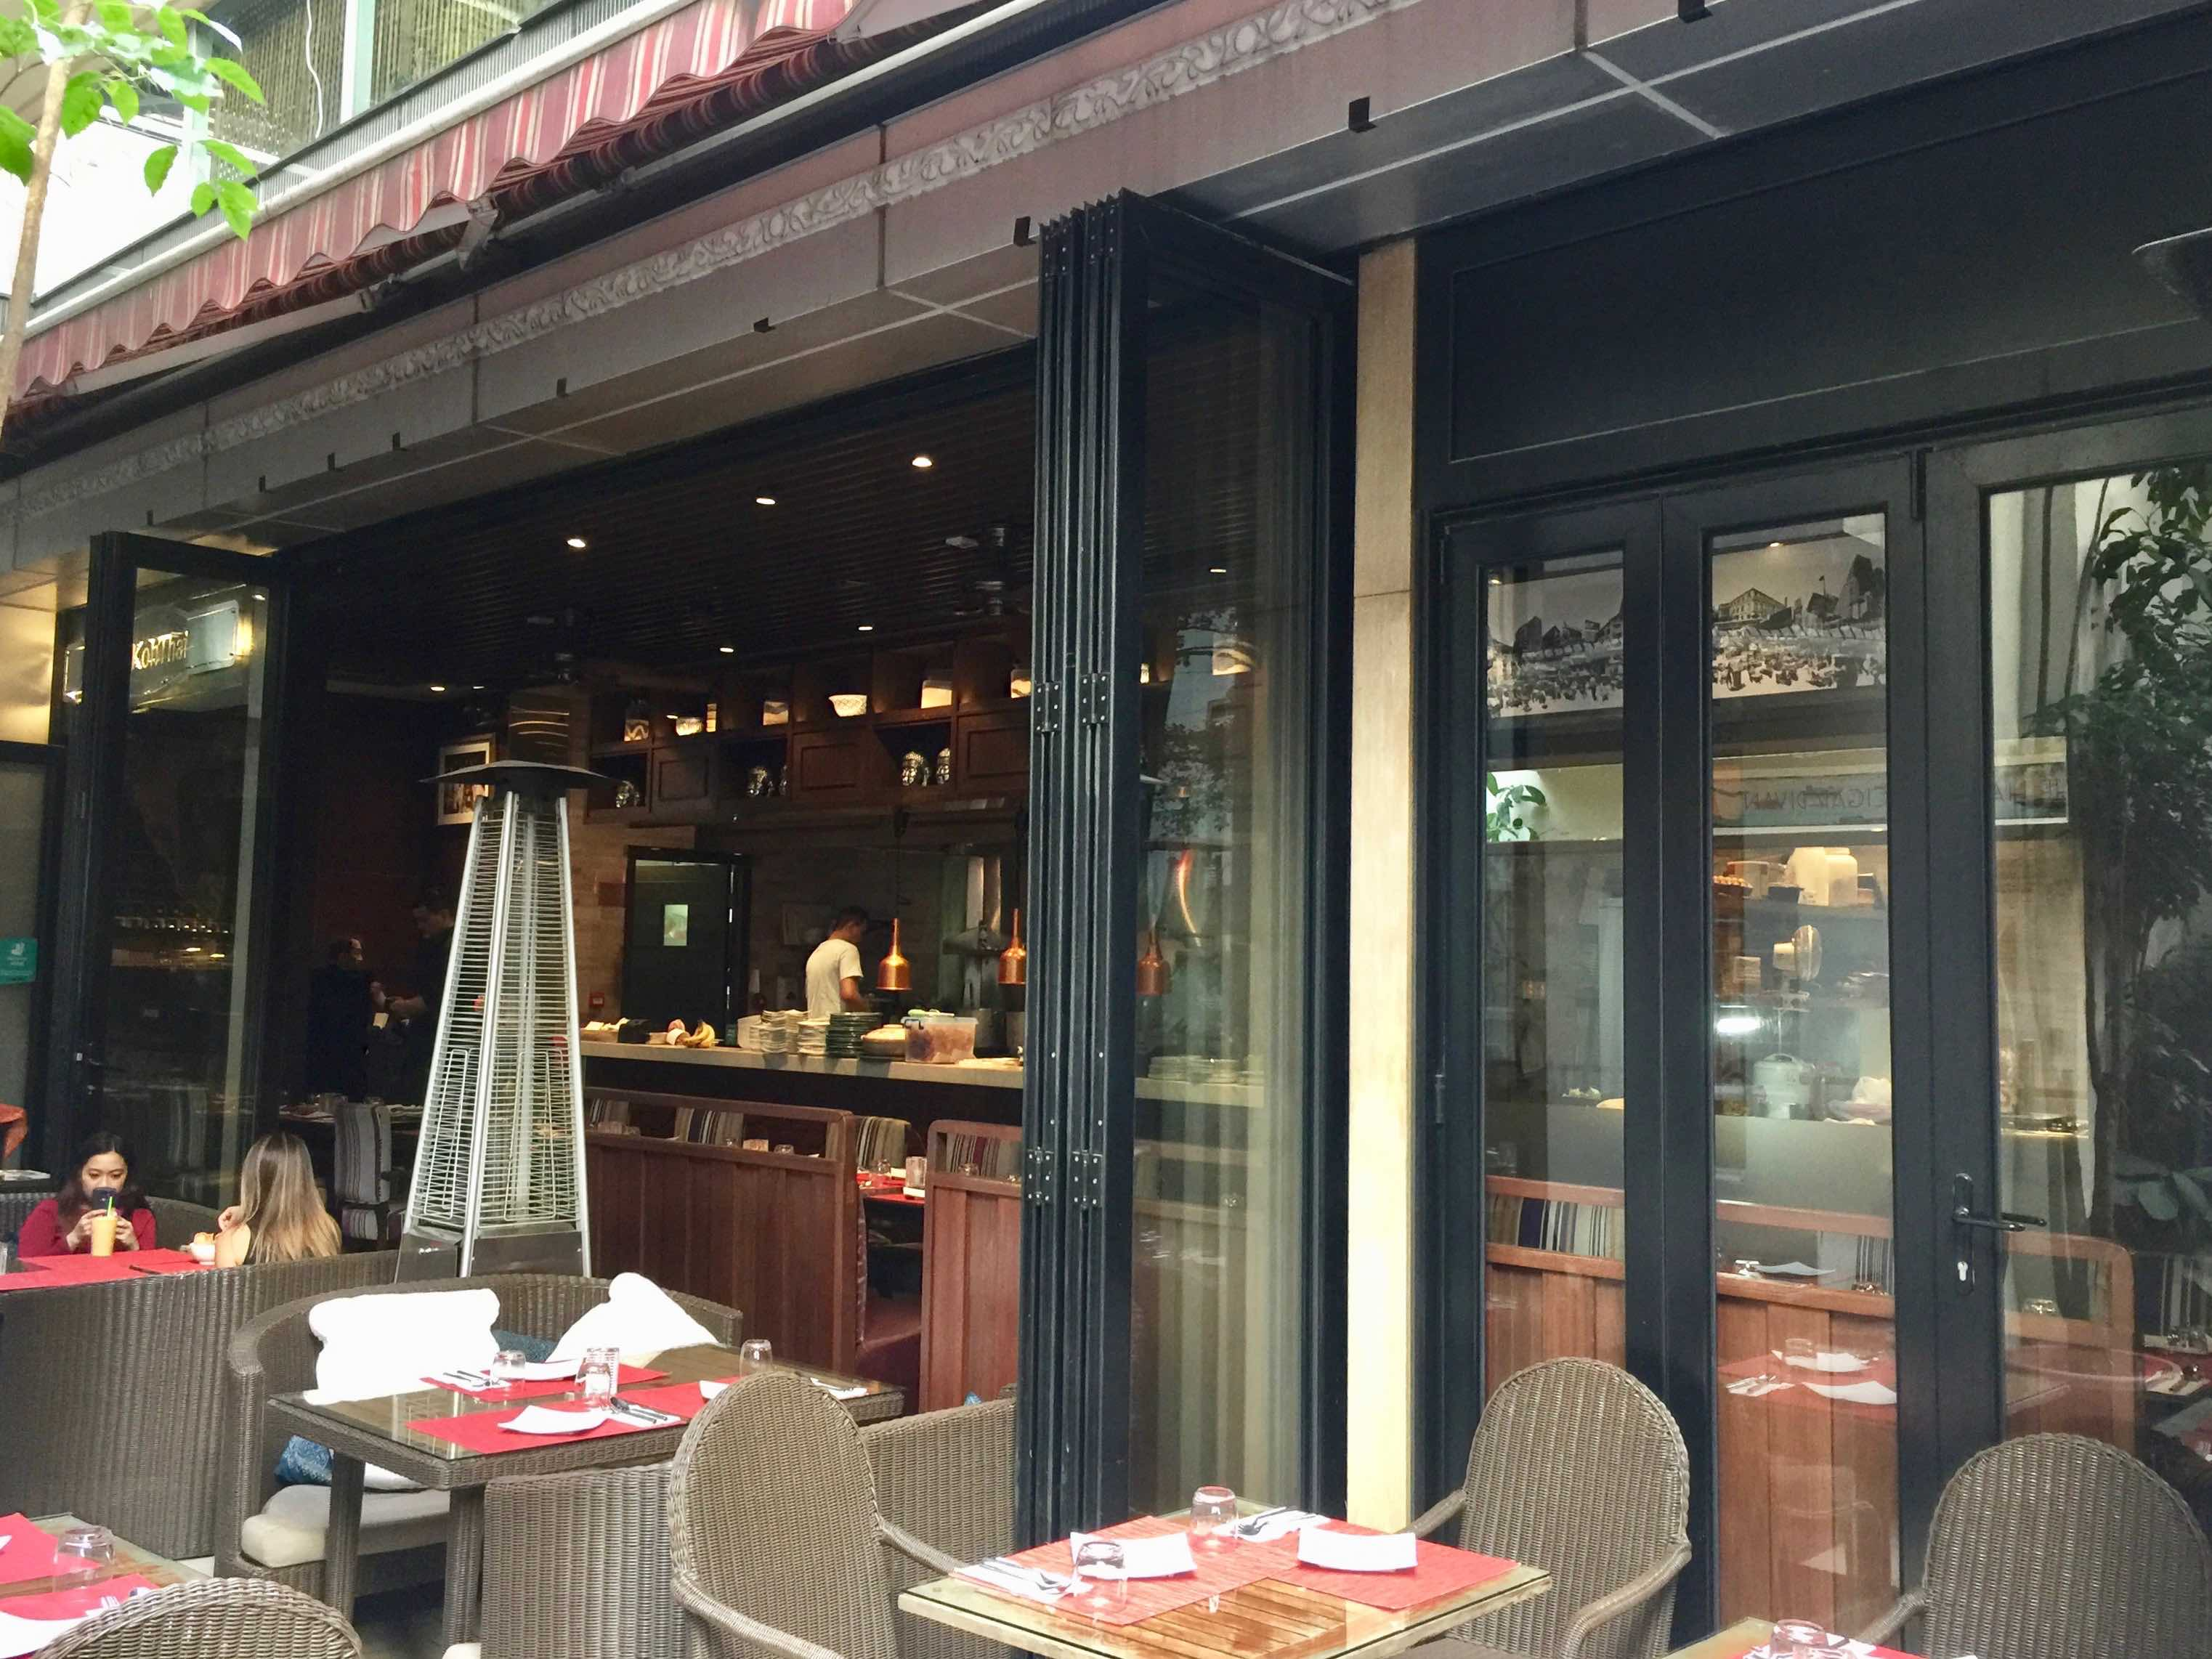 HK Huge Outdoor Fitted Restaurant Space for Rent in Wan Chai